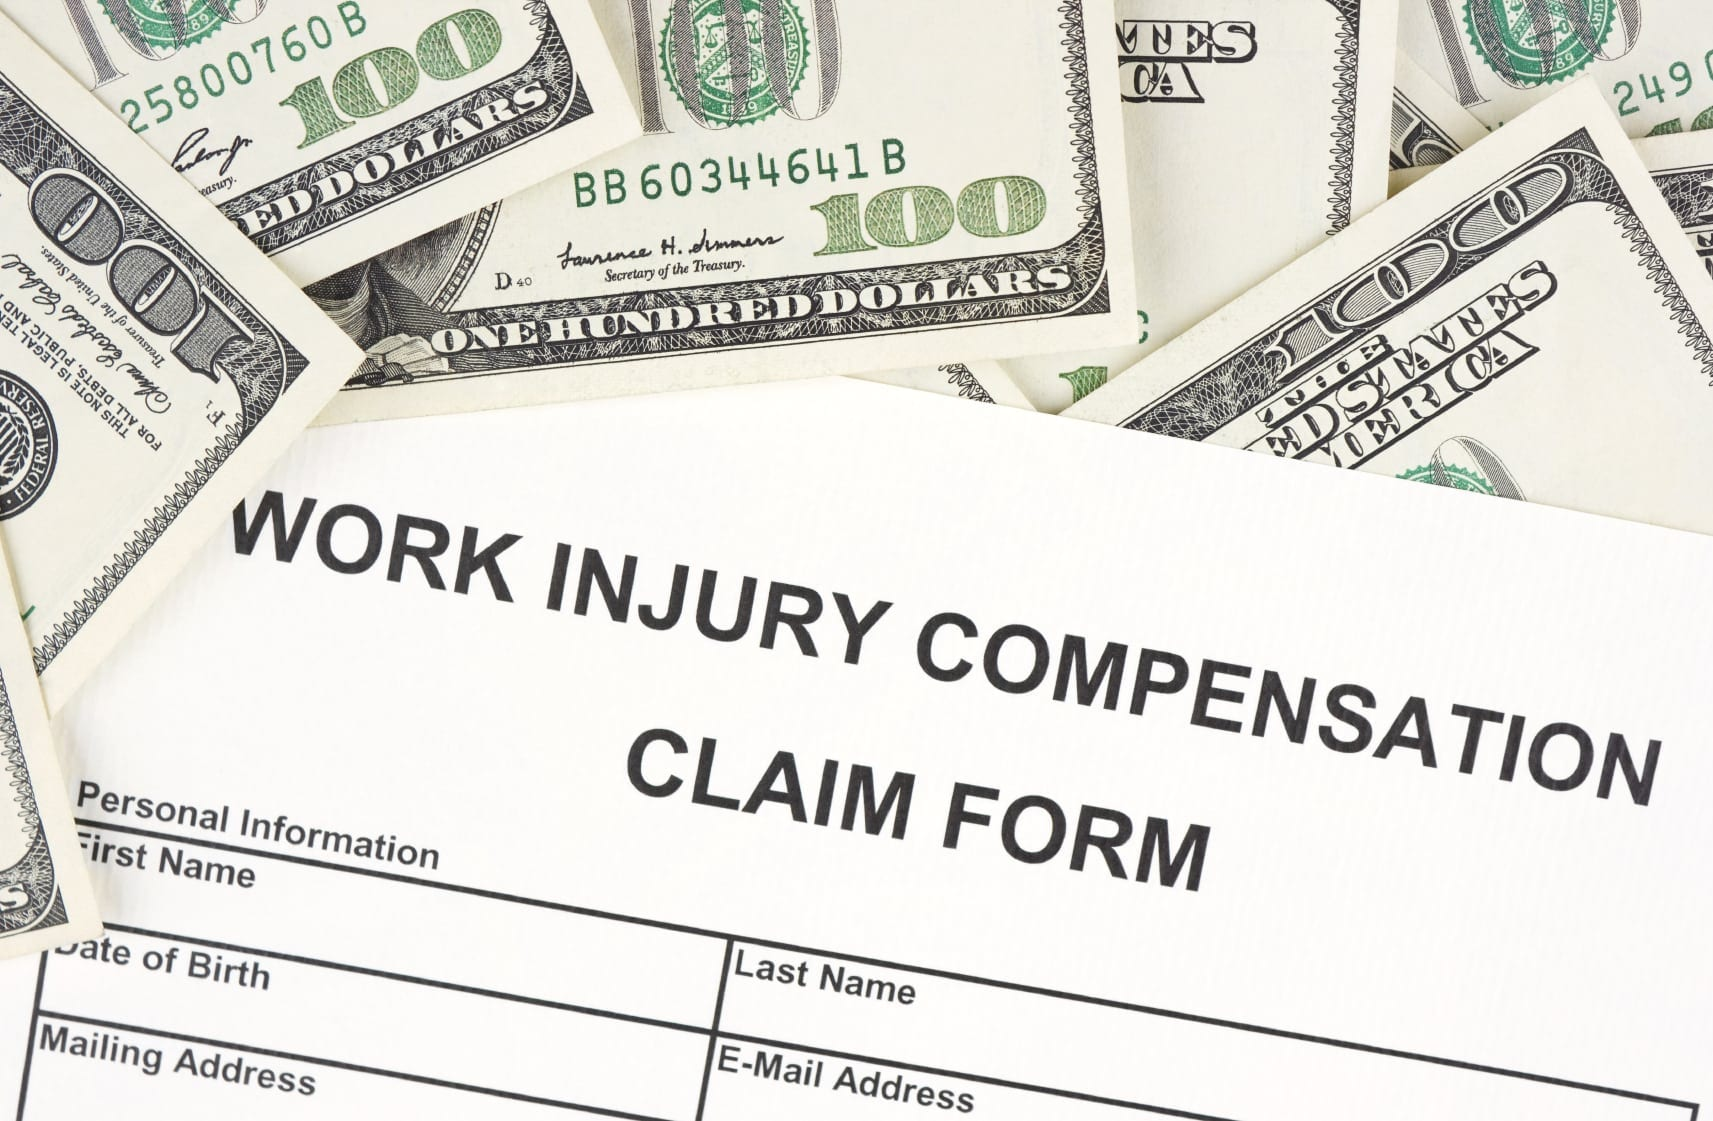 Blank Work Injury Compensation Claim Form Stock Photo